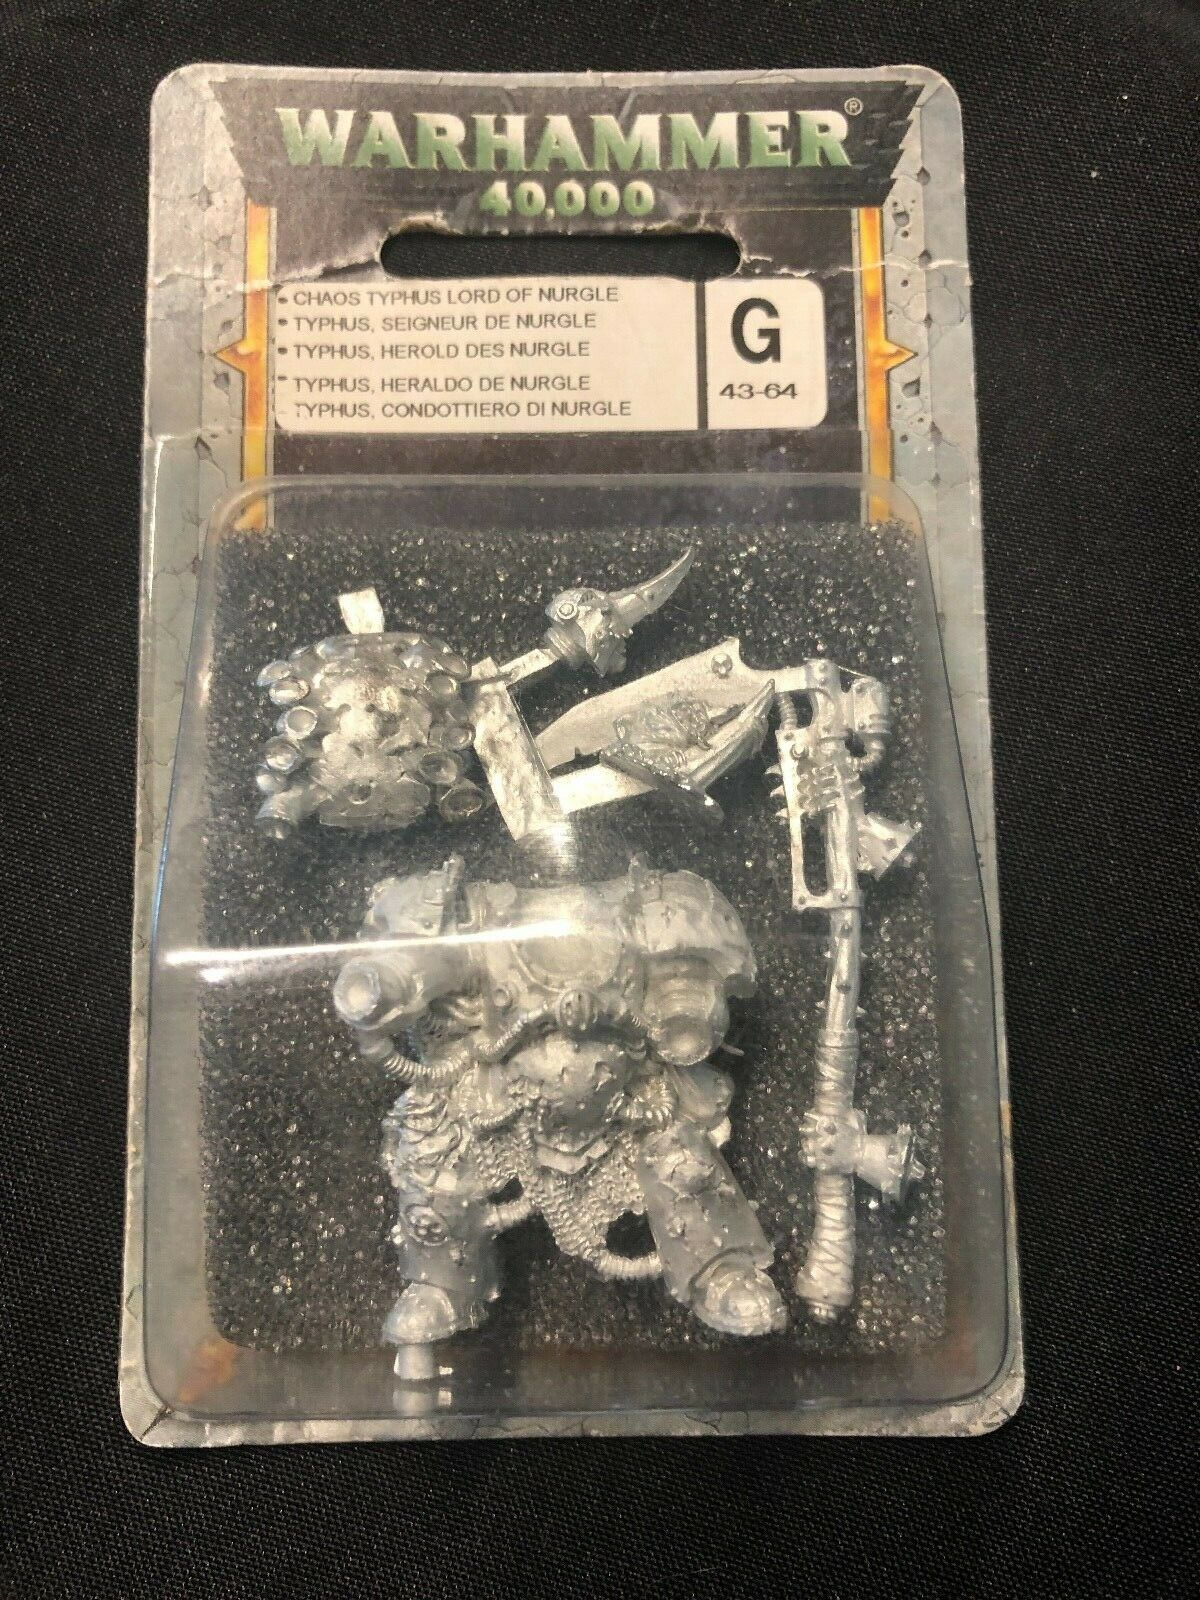 Juegos Workshop Warhammer 40k Chaos Space Marines Nurgle Lord Terminator Typhus